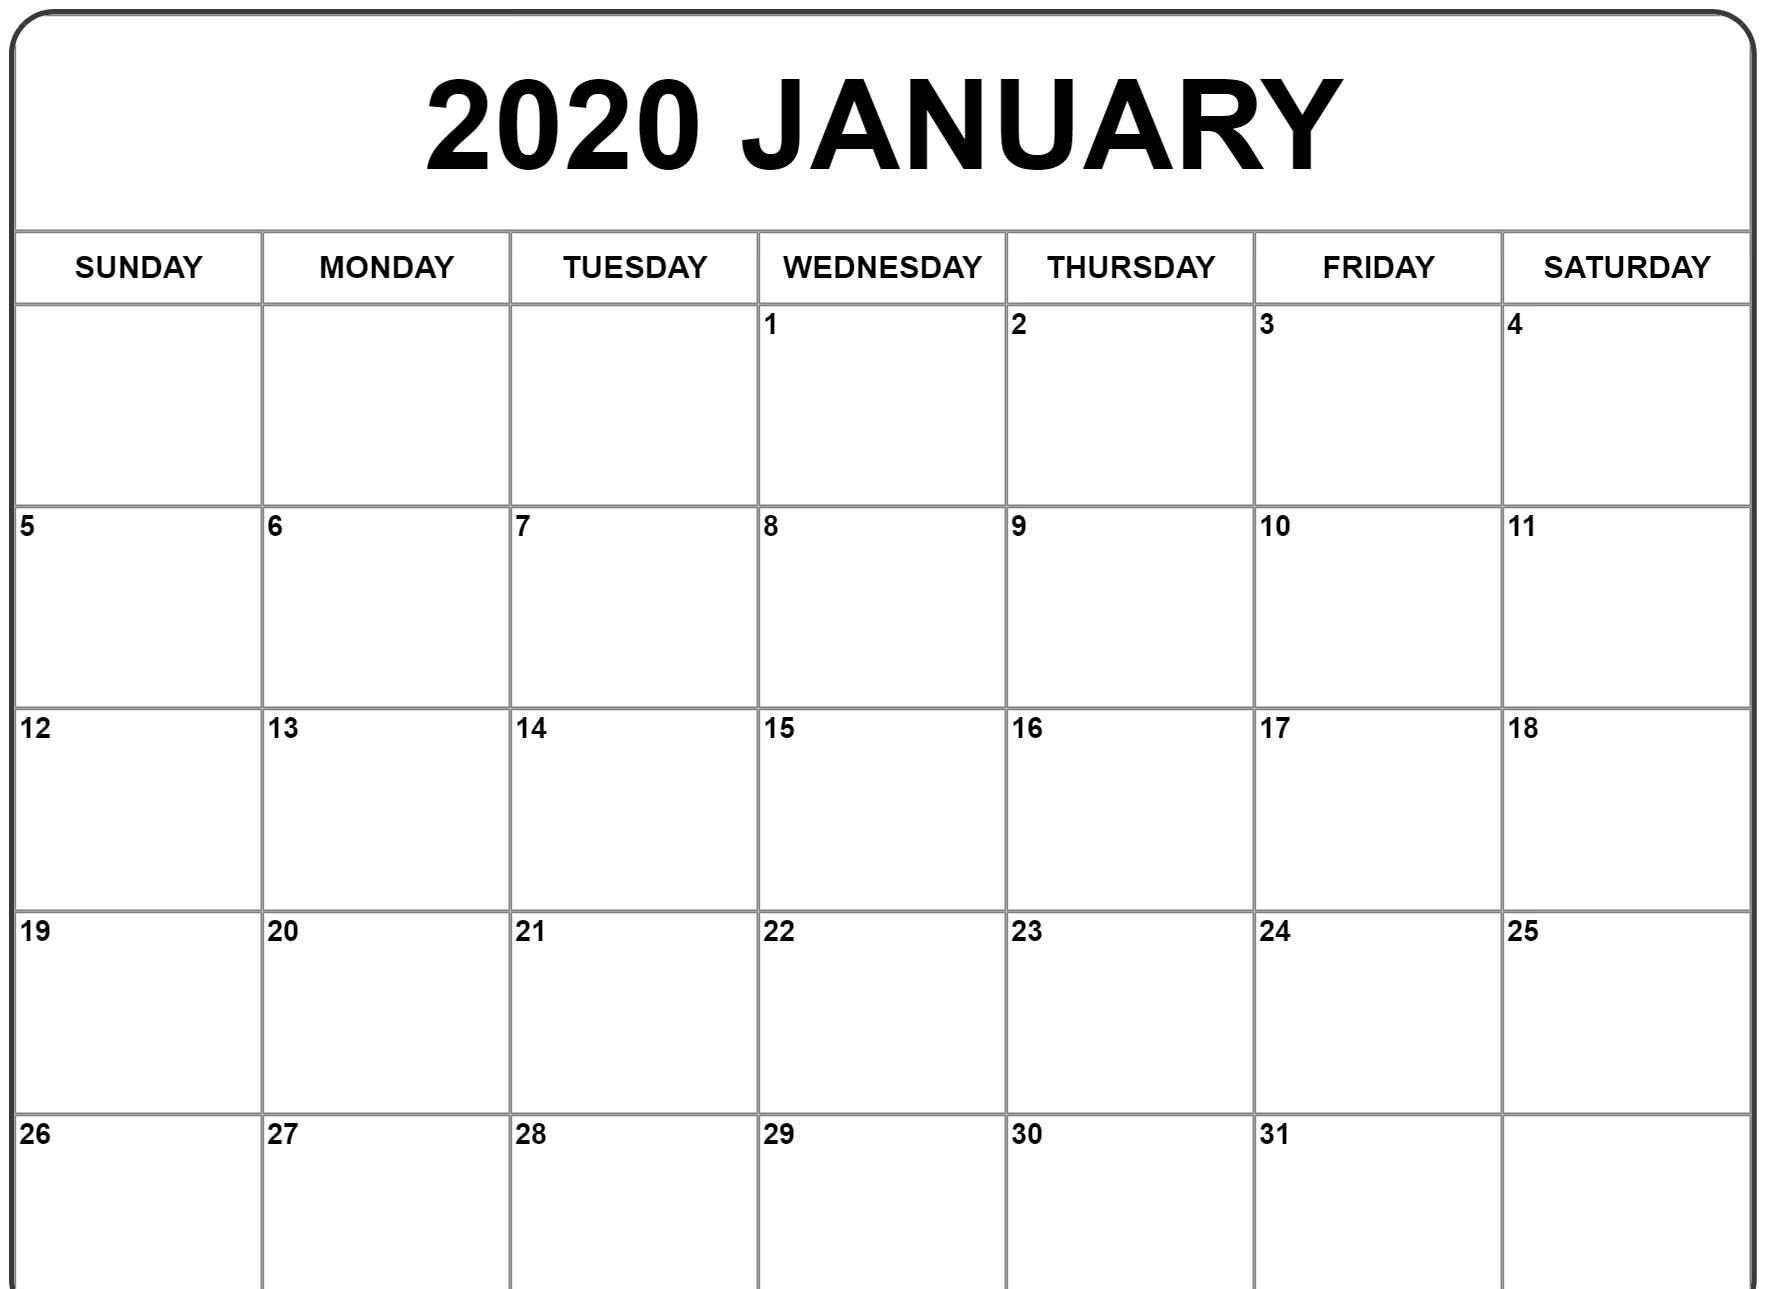 2020 January Calendar | January Calendar, Monthly Calendar within Calendar 2020 January